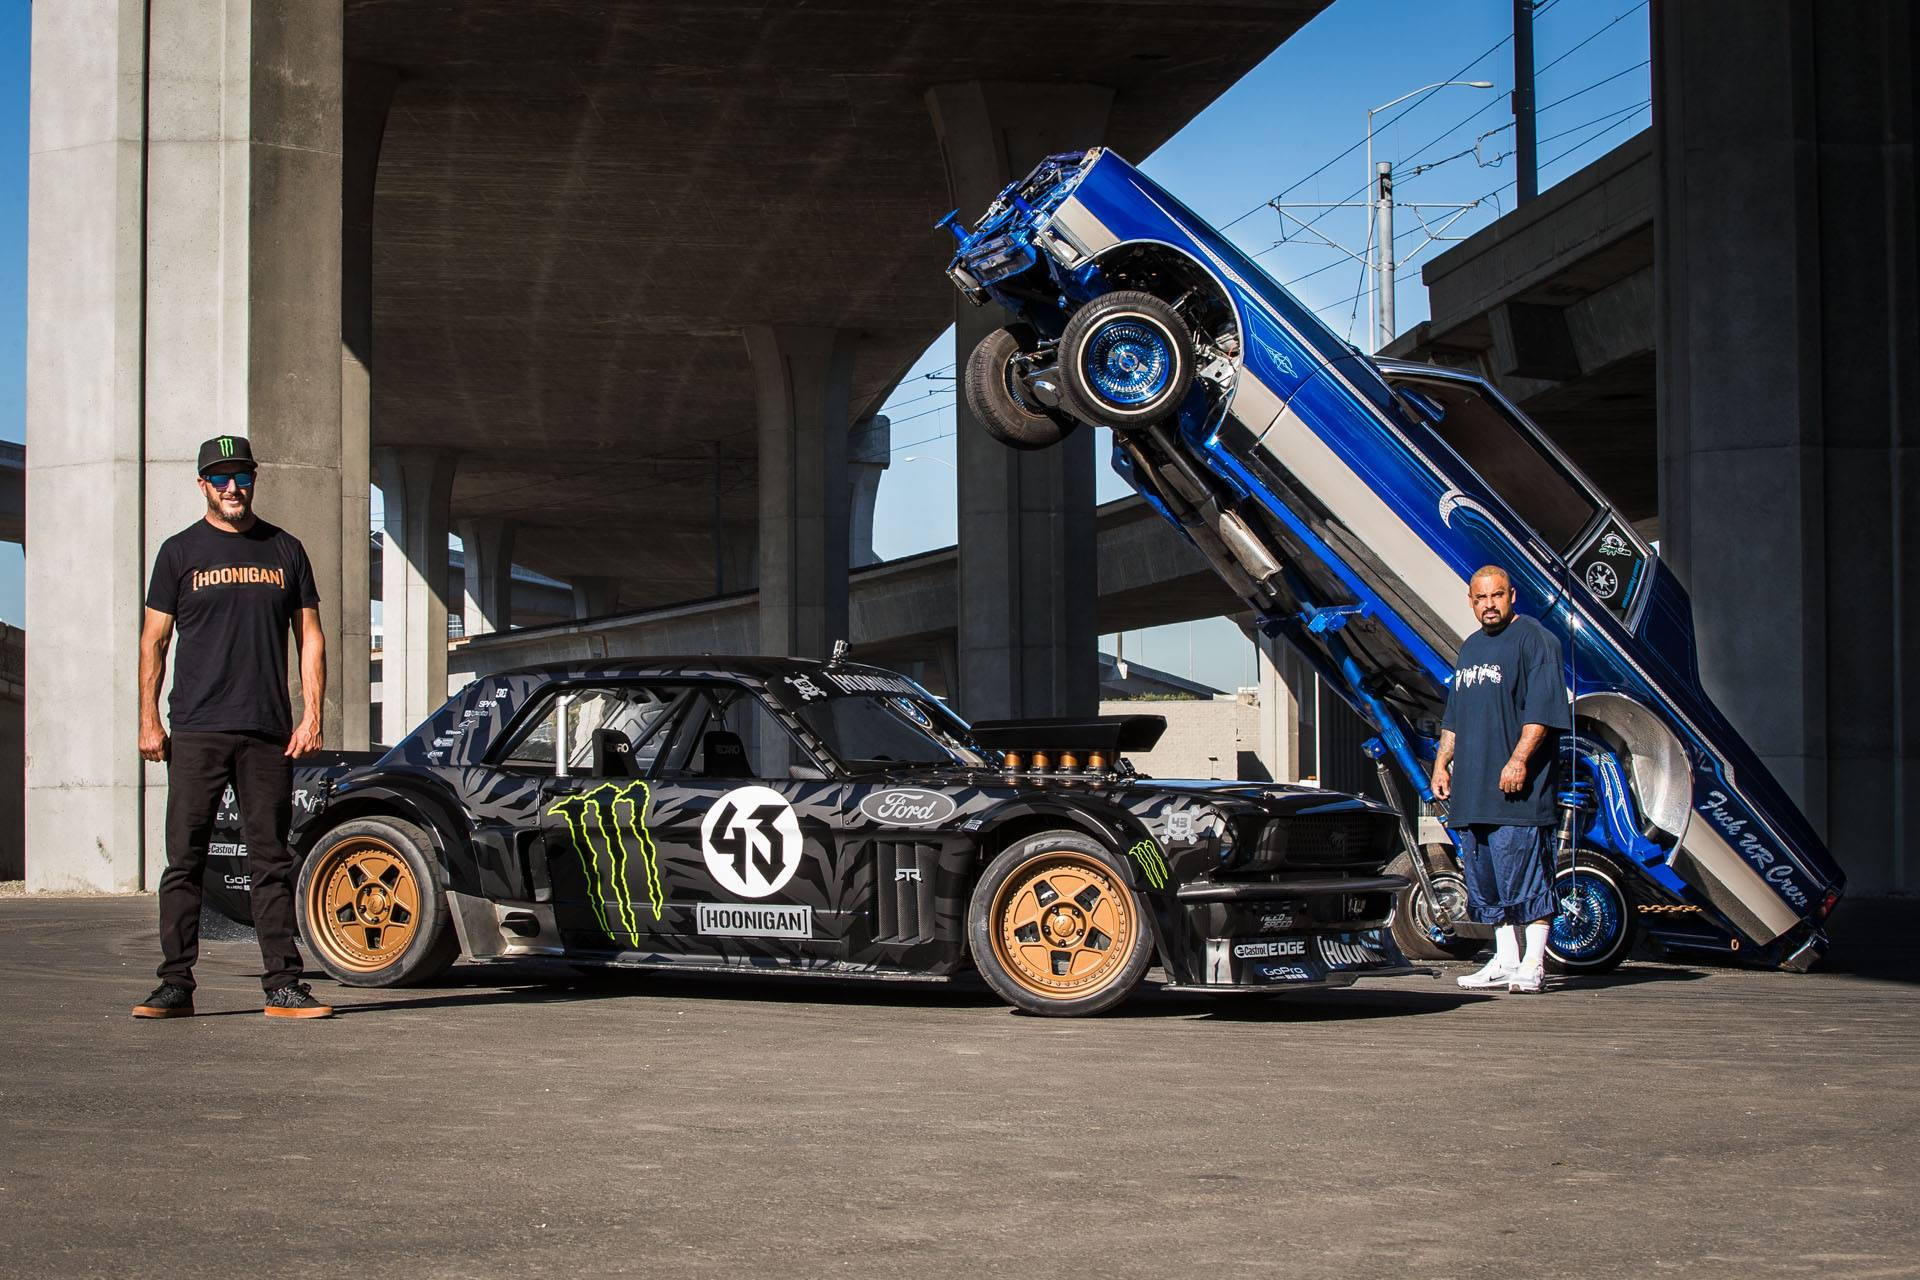 la derni re vid o de ken block en mustang dans los angeles. Black Bedroom Furniture Sets. Home Design Ideas